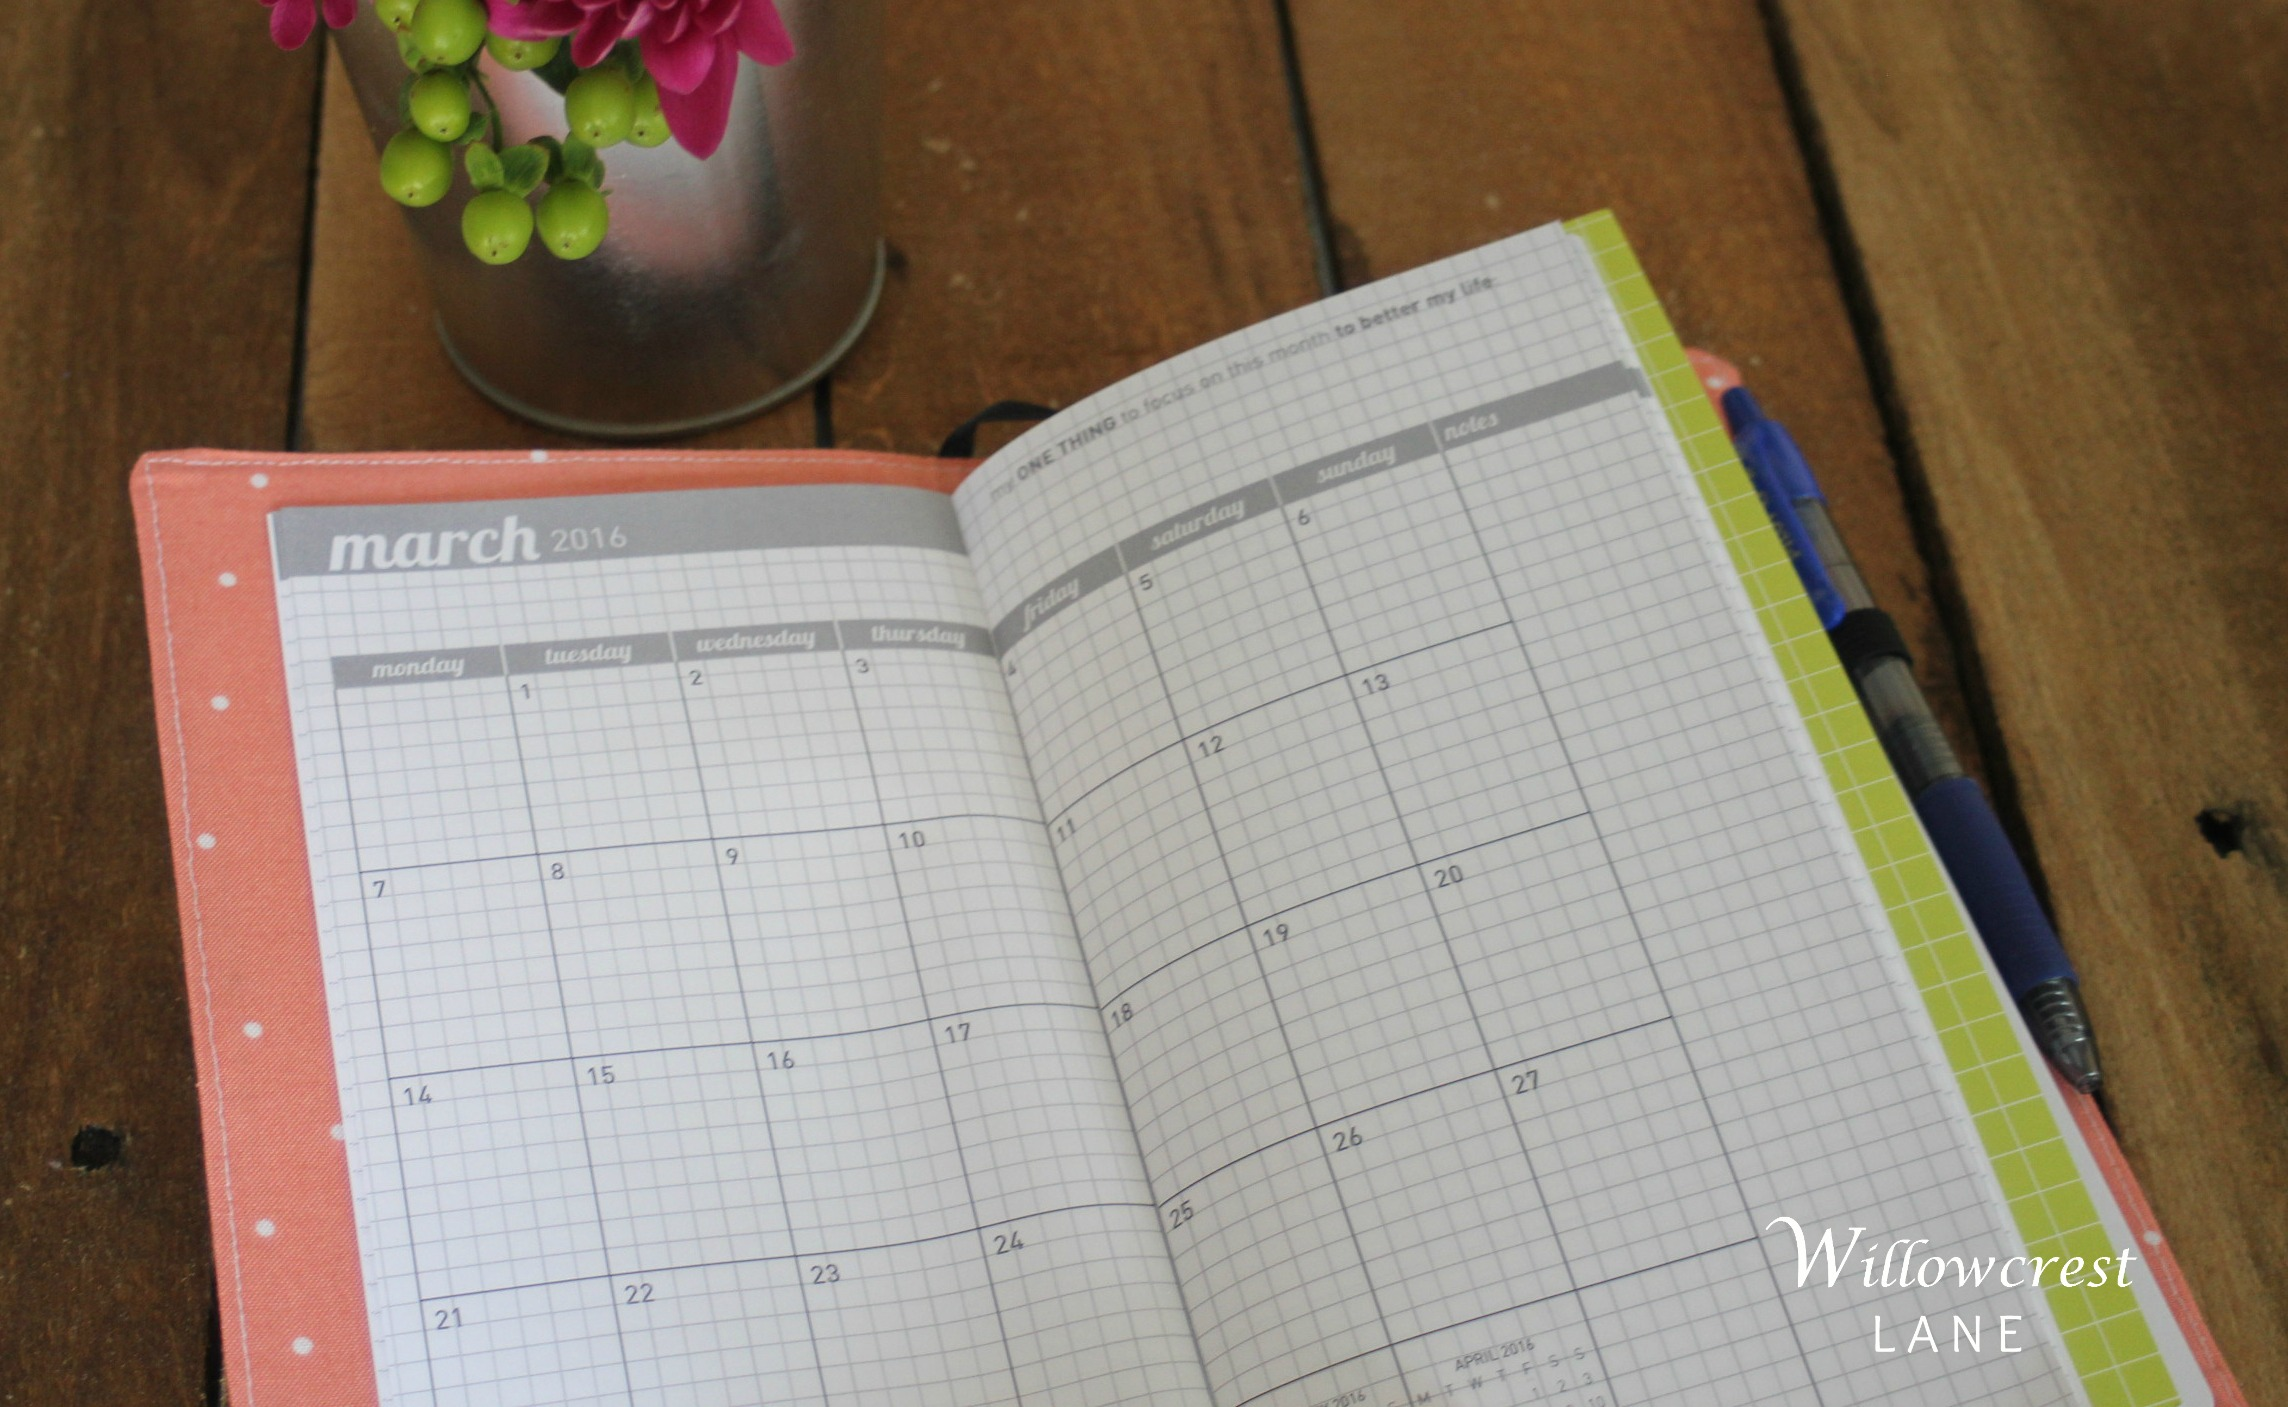 This monthly view is perfect for a quick glance when I'm out and about and don't have my larger family planner with me. I love the grid lines for neat note-taking.